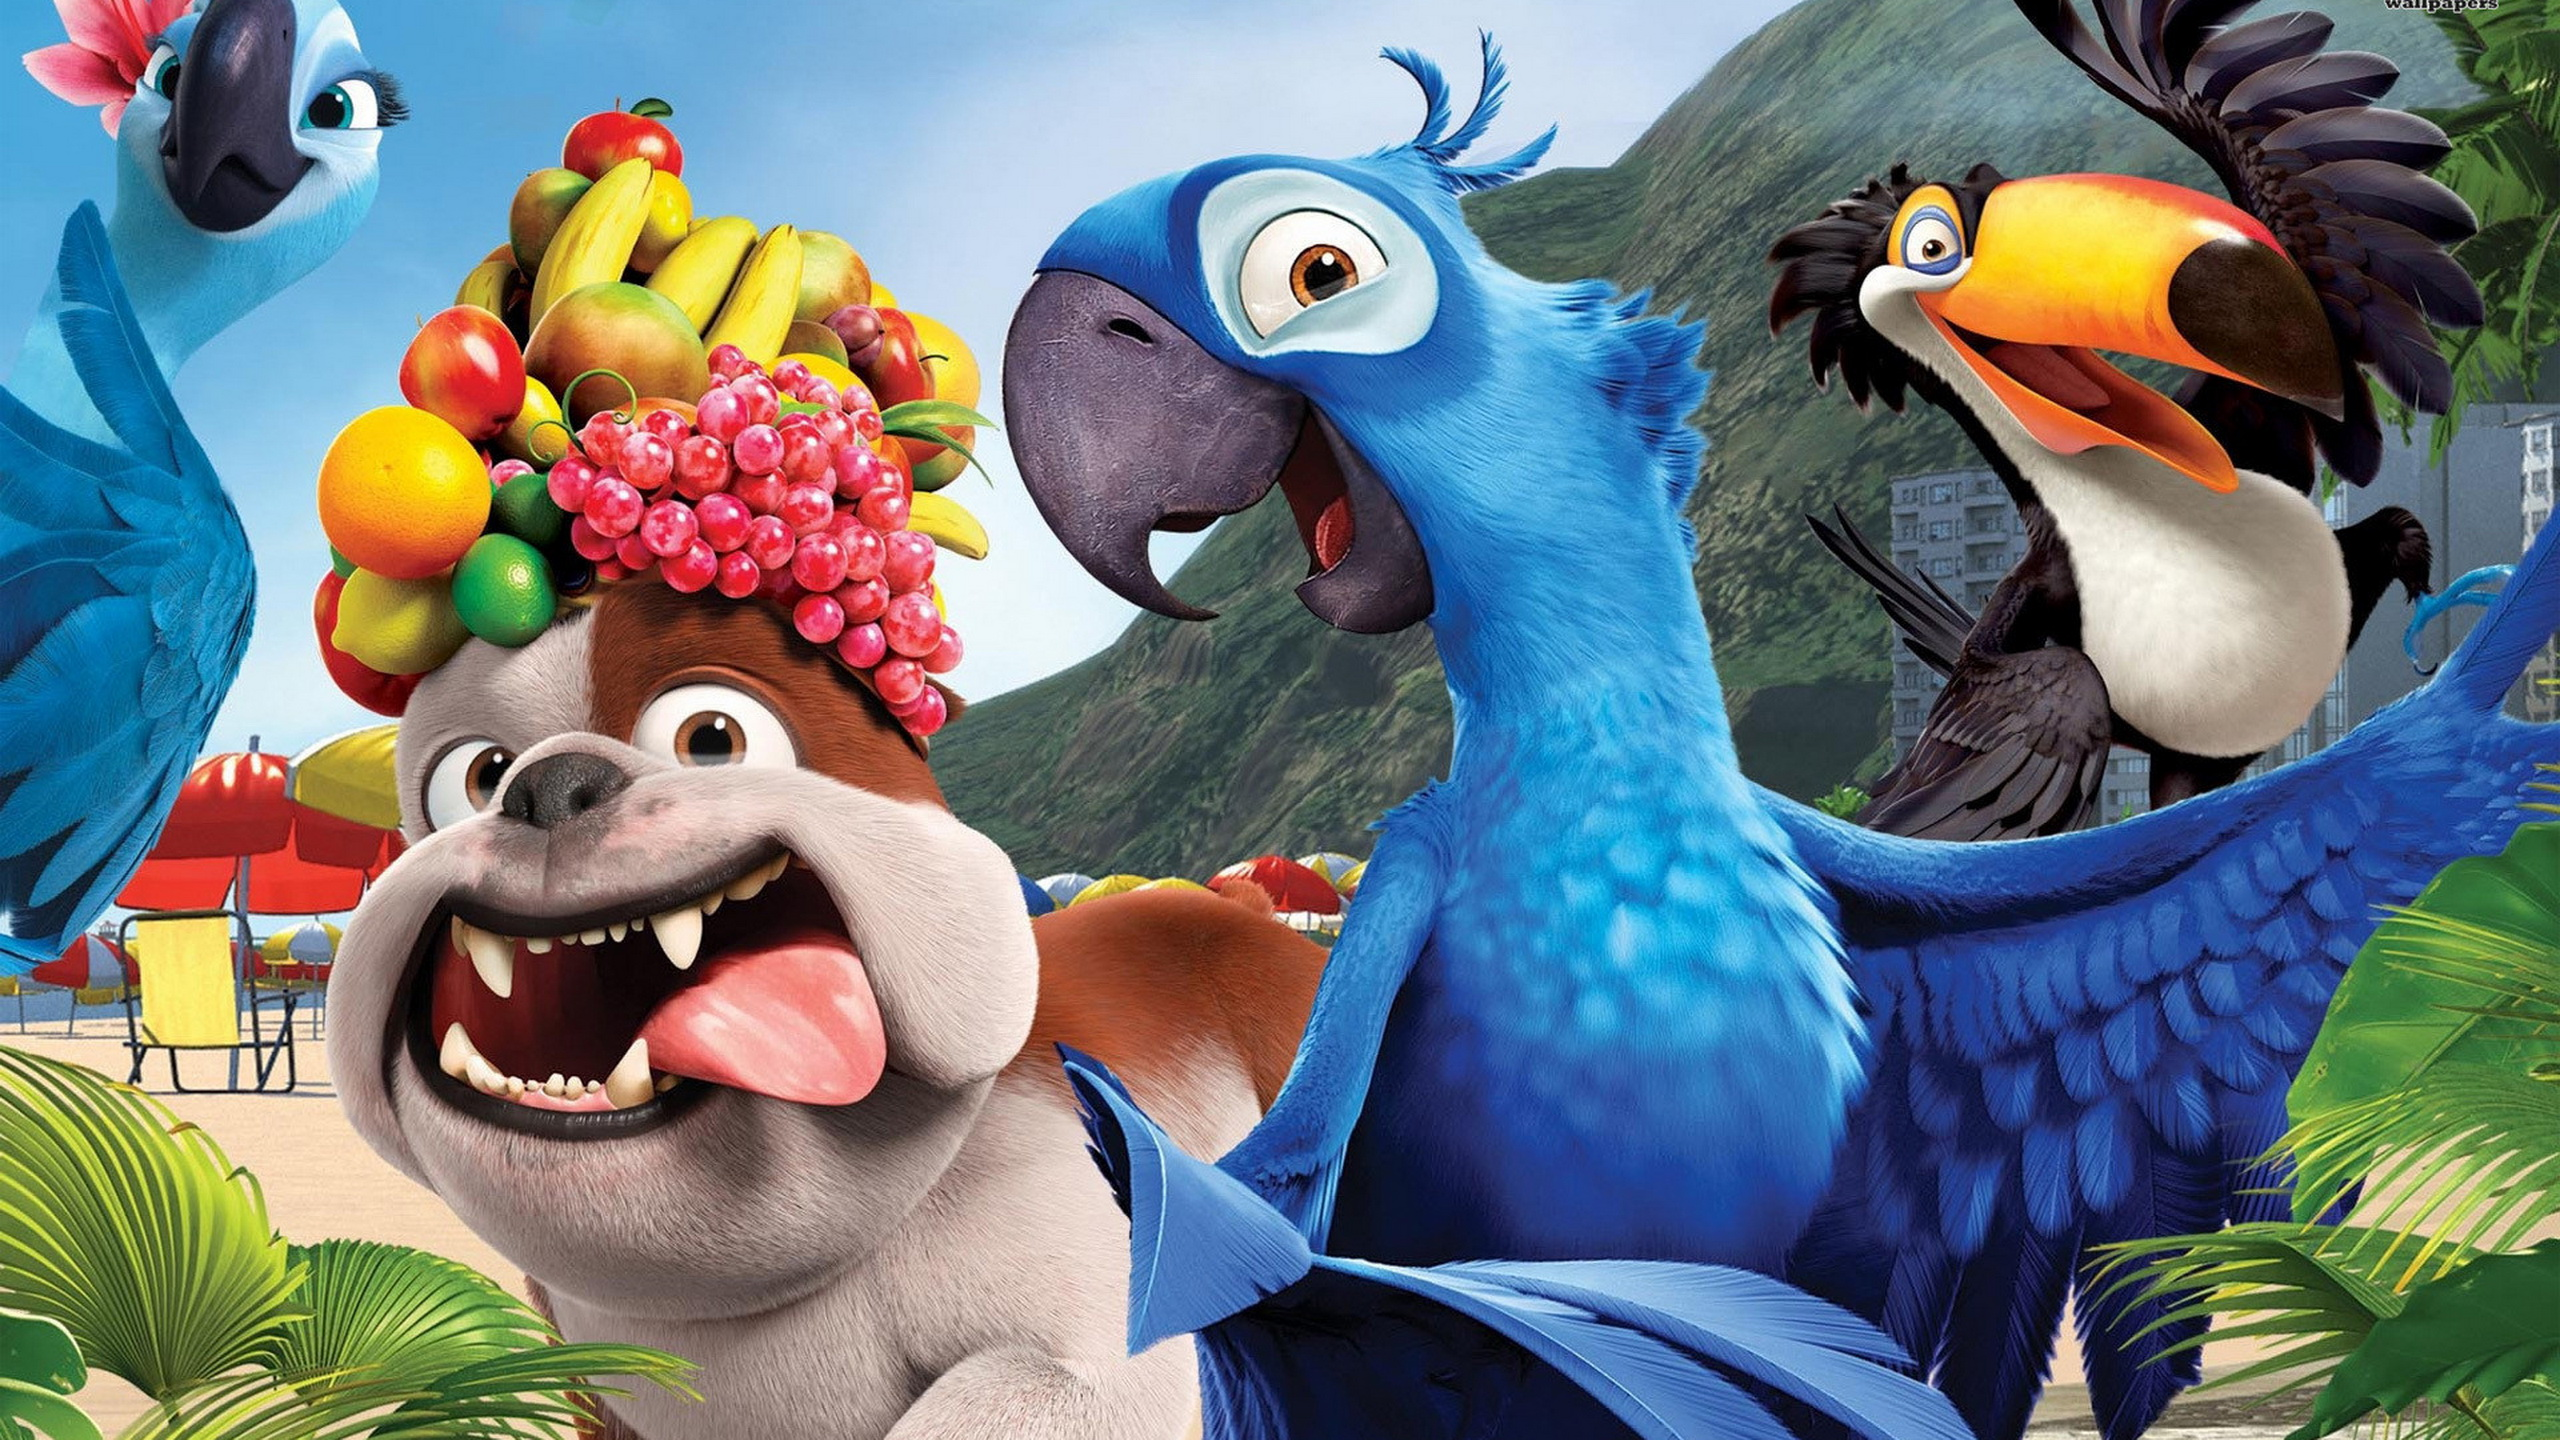 Could go either way, tbh. Rio 2 Animated Movie Amazing HD Wallpapers 2015 - All HD ...